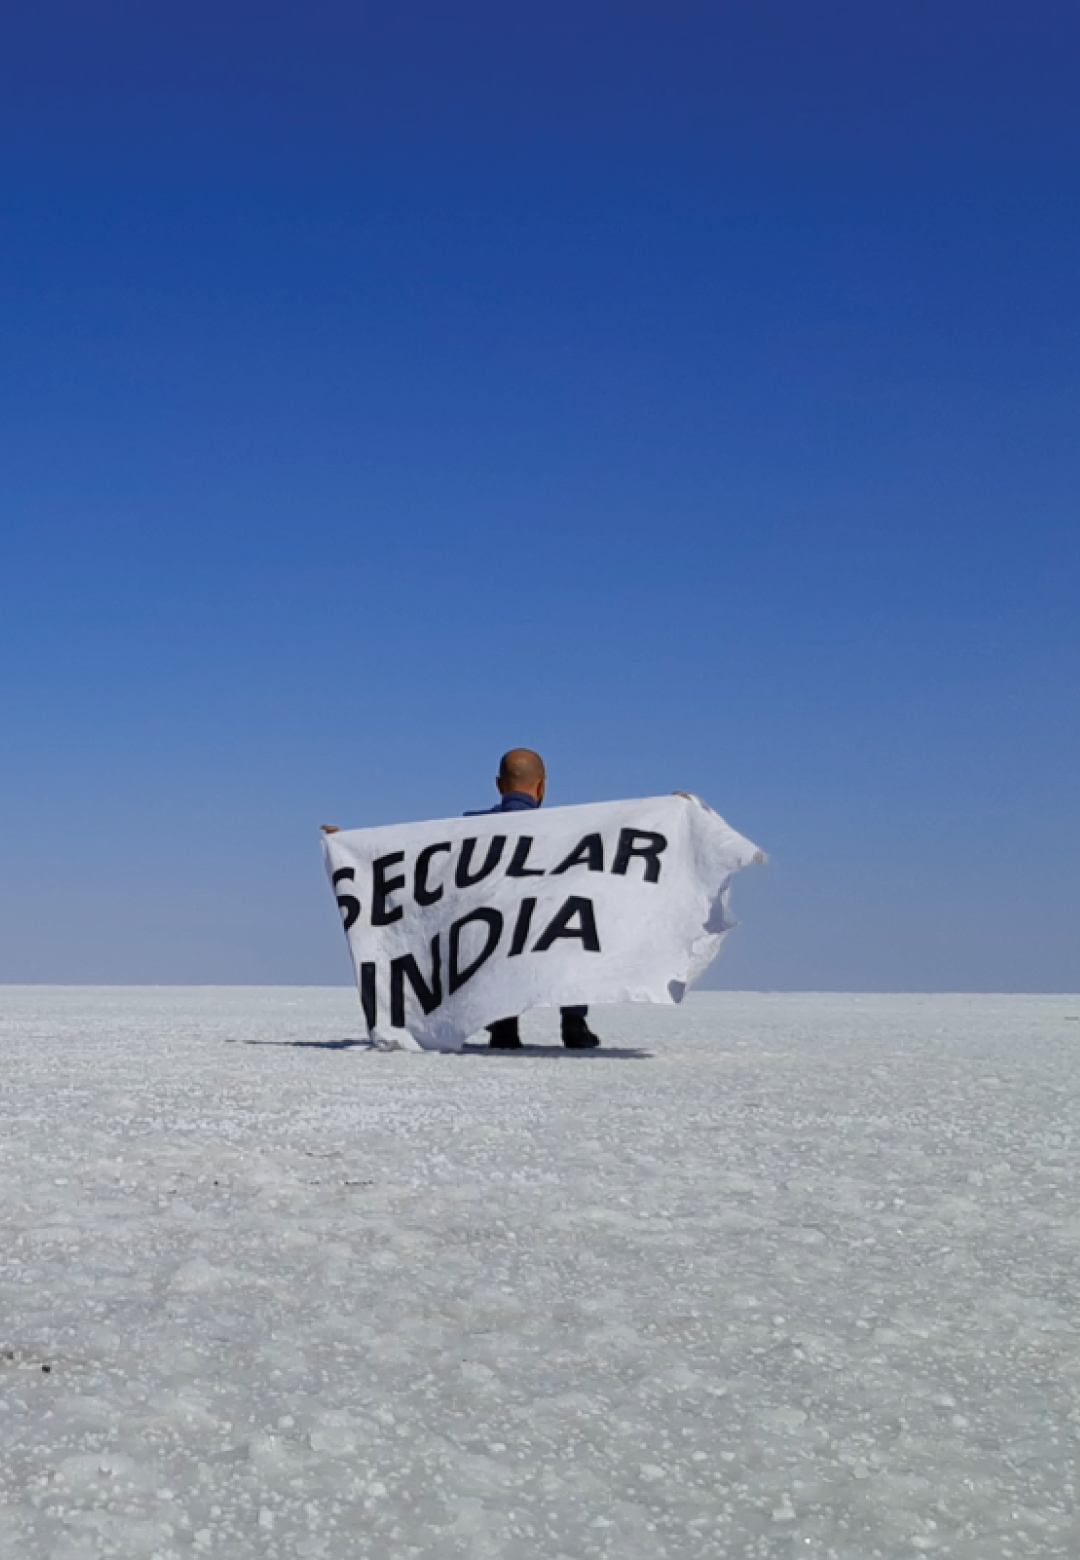 In search of a ritual, 'The Secular Project' at the Rann of Kutch, Gujarat | Mandeep Raikhy | The Secular Project | STIRworld